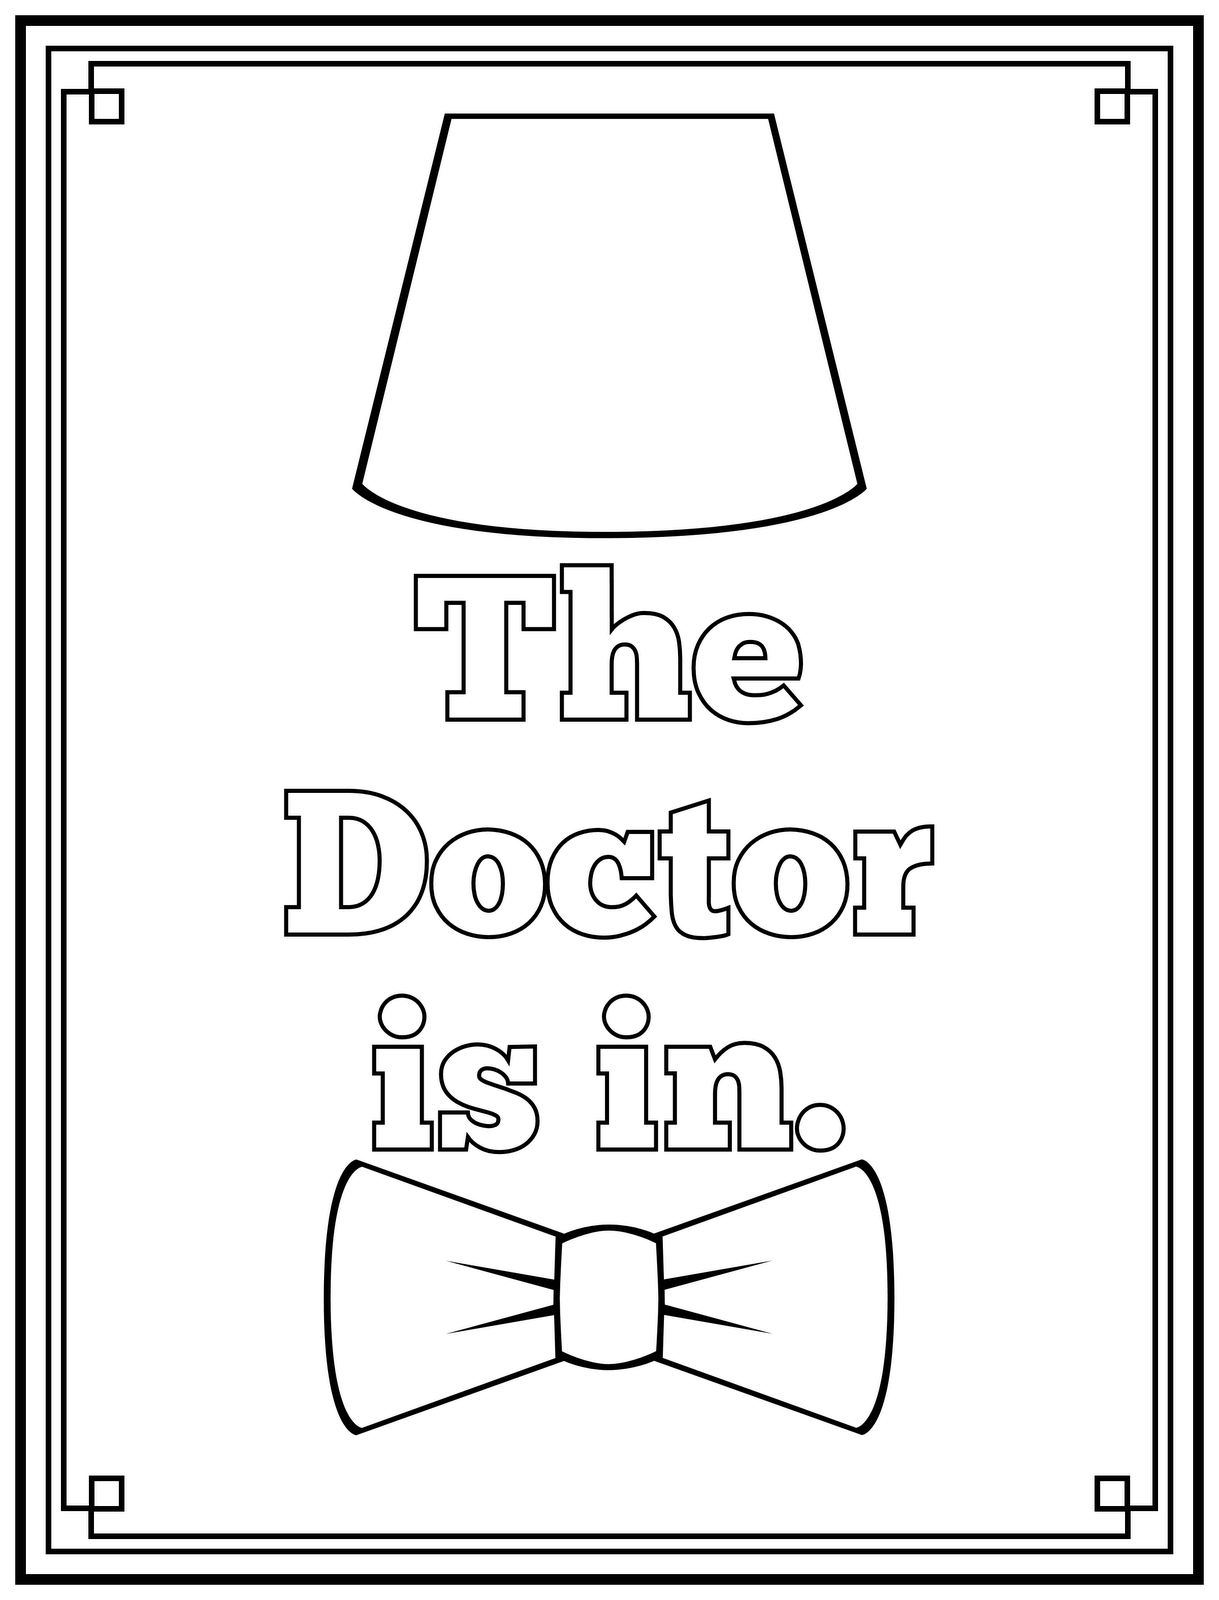 dr who coloring pages The Doctor Is IN printable art and coloring page | Dodo's Birthday  dr who coloring pages